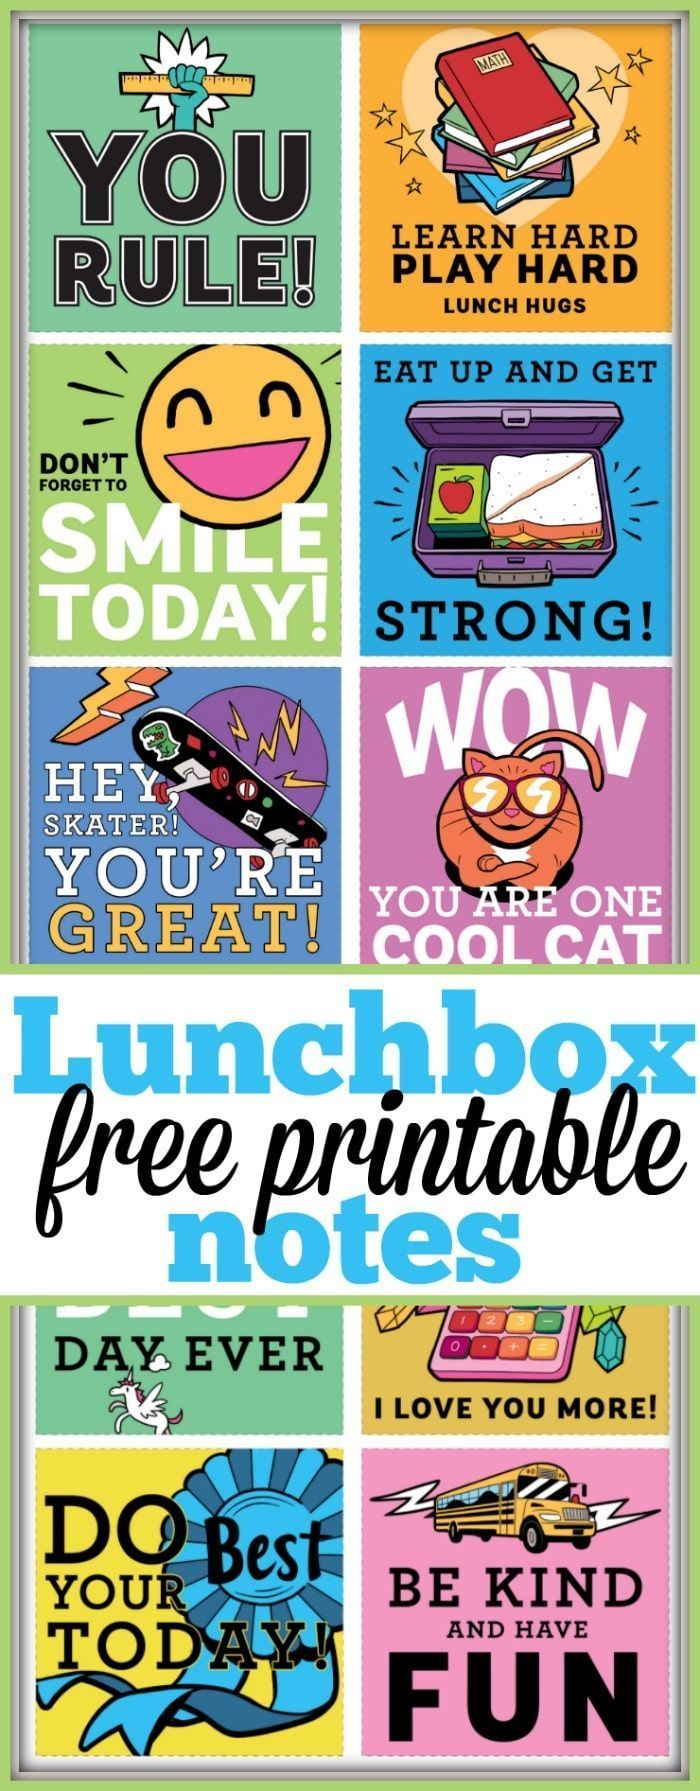 school is about to begin and here are some free printable lunchbox notes you can cut out and include in their lunch boxes to put smiles on the